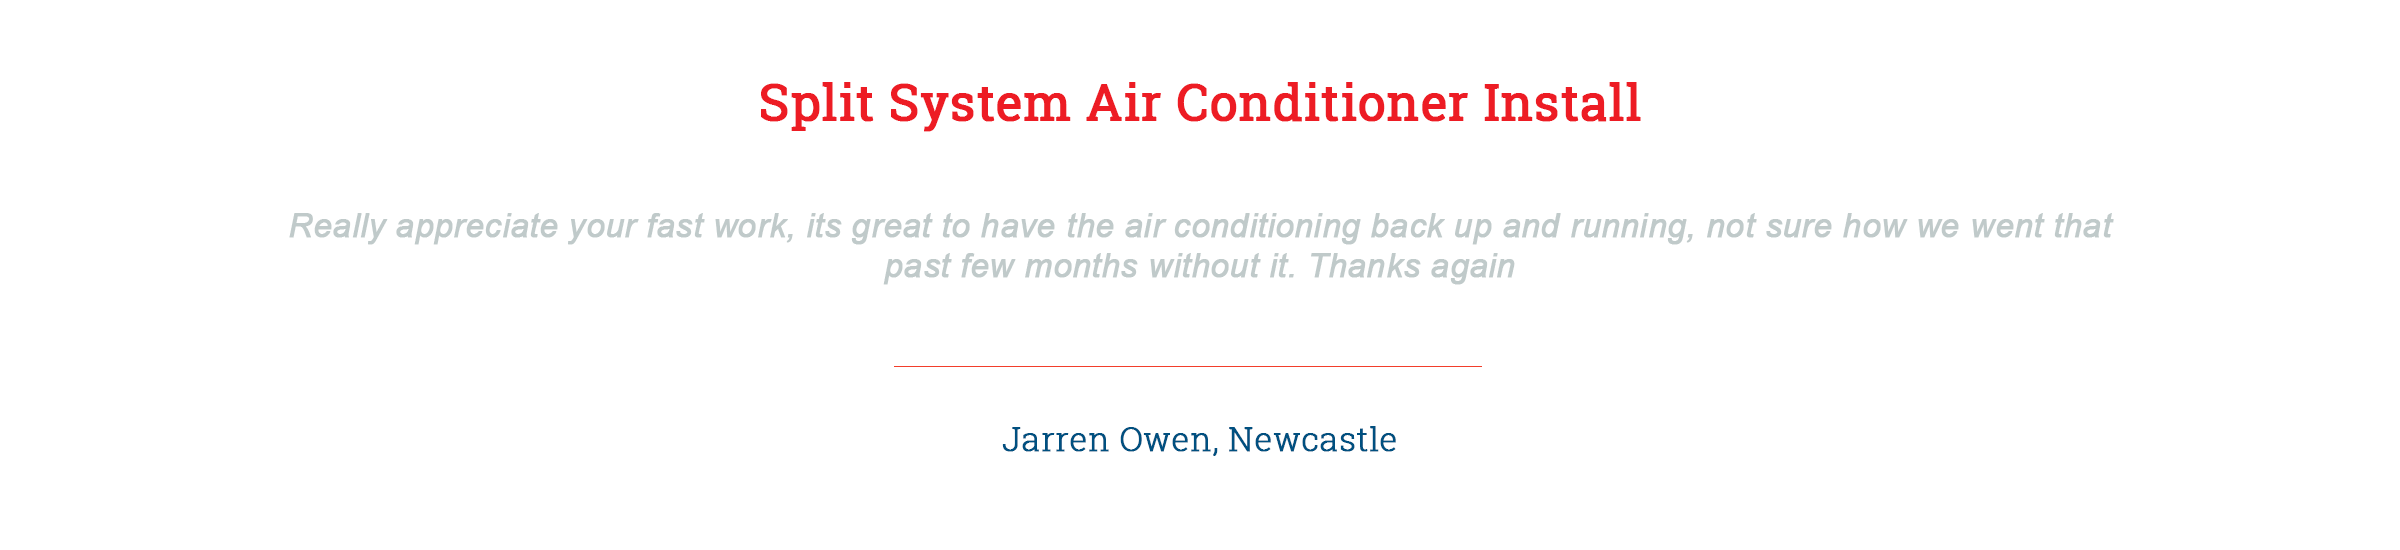 jarren-owens-recommendation-for-nsw-m&h-air-conditioning-in-newcastle